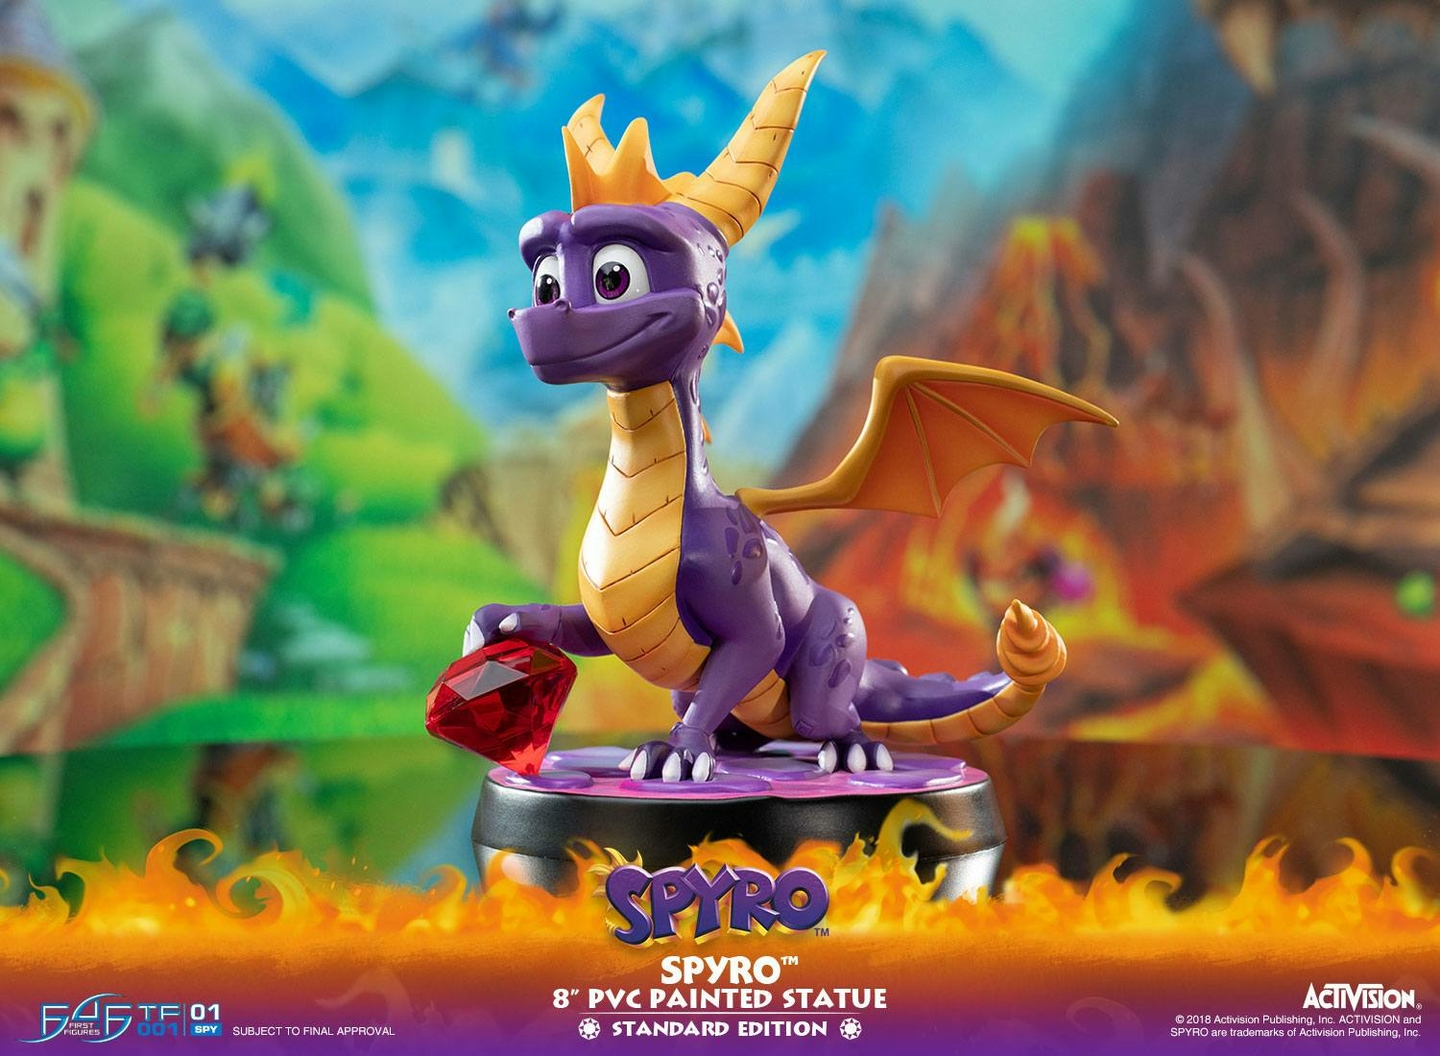 Statuette Spyro the Dragon Spyro 20cm 1001 Figurines (2)